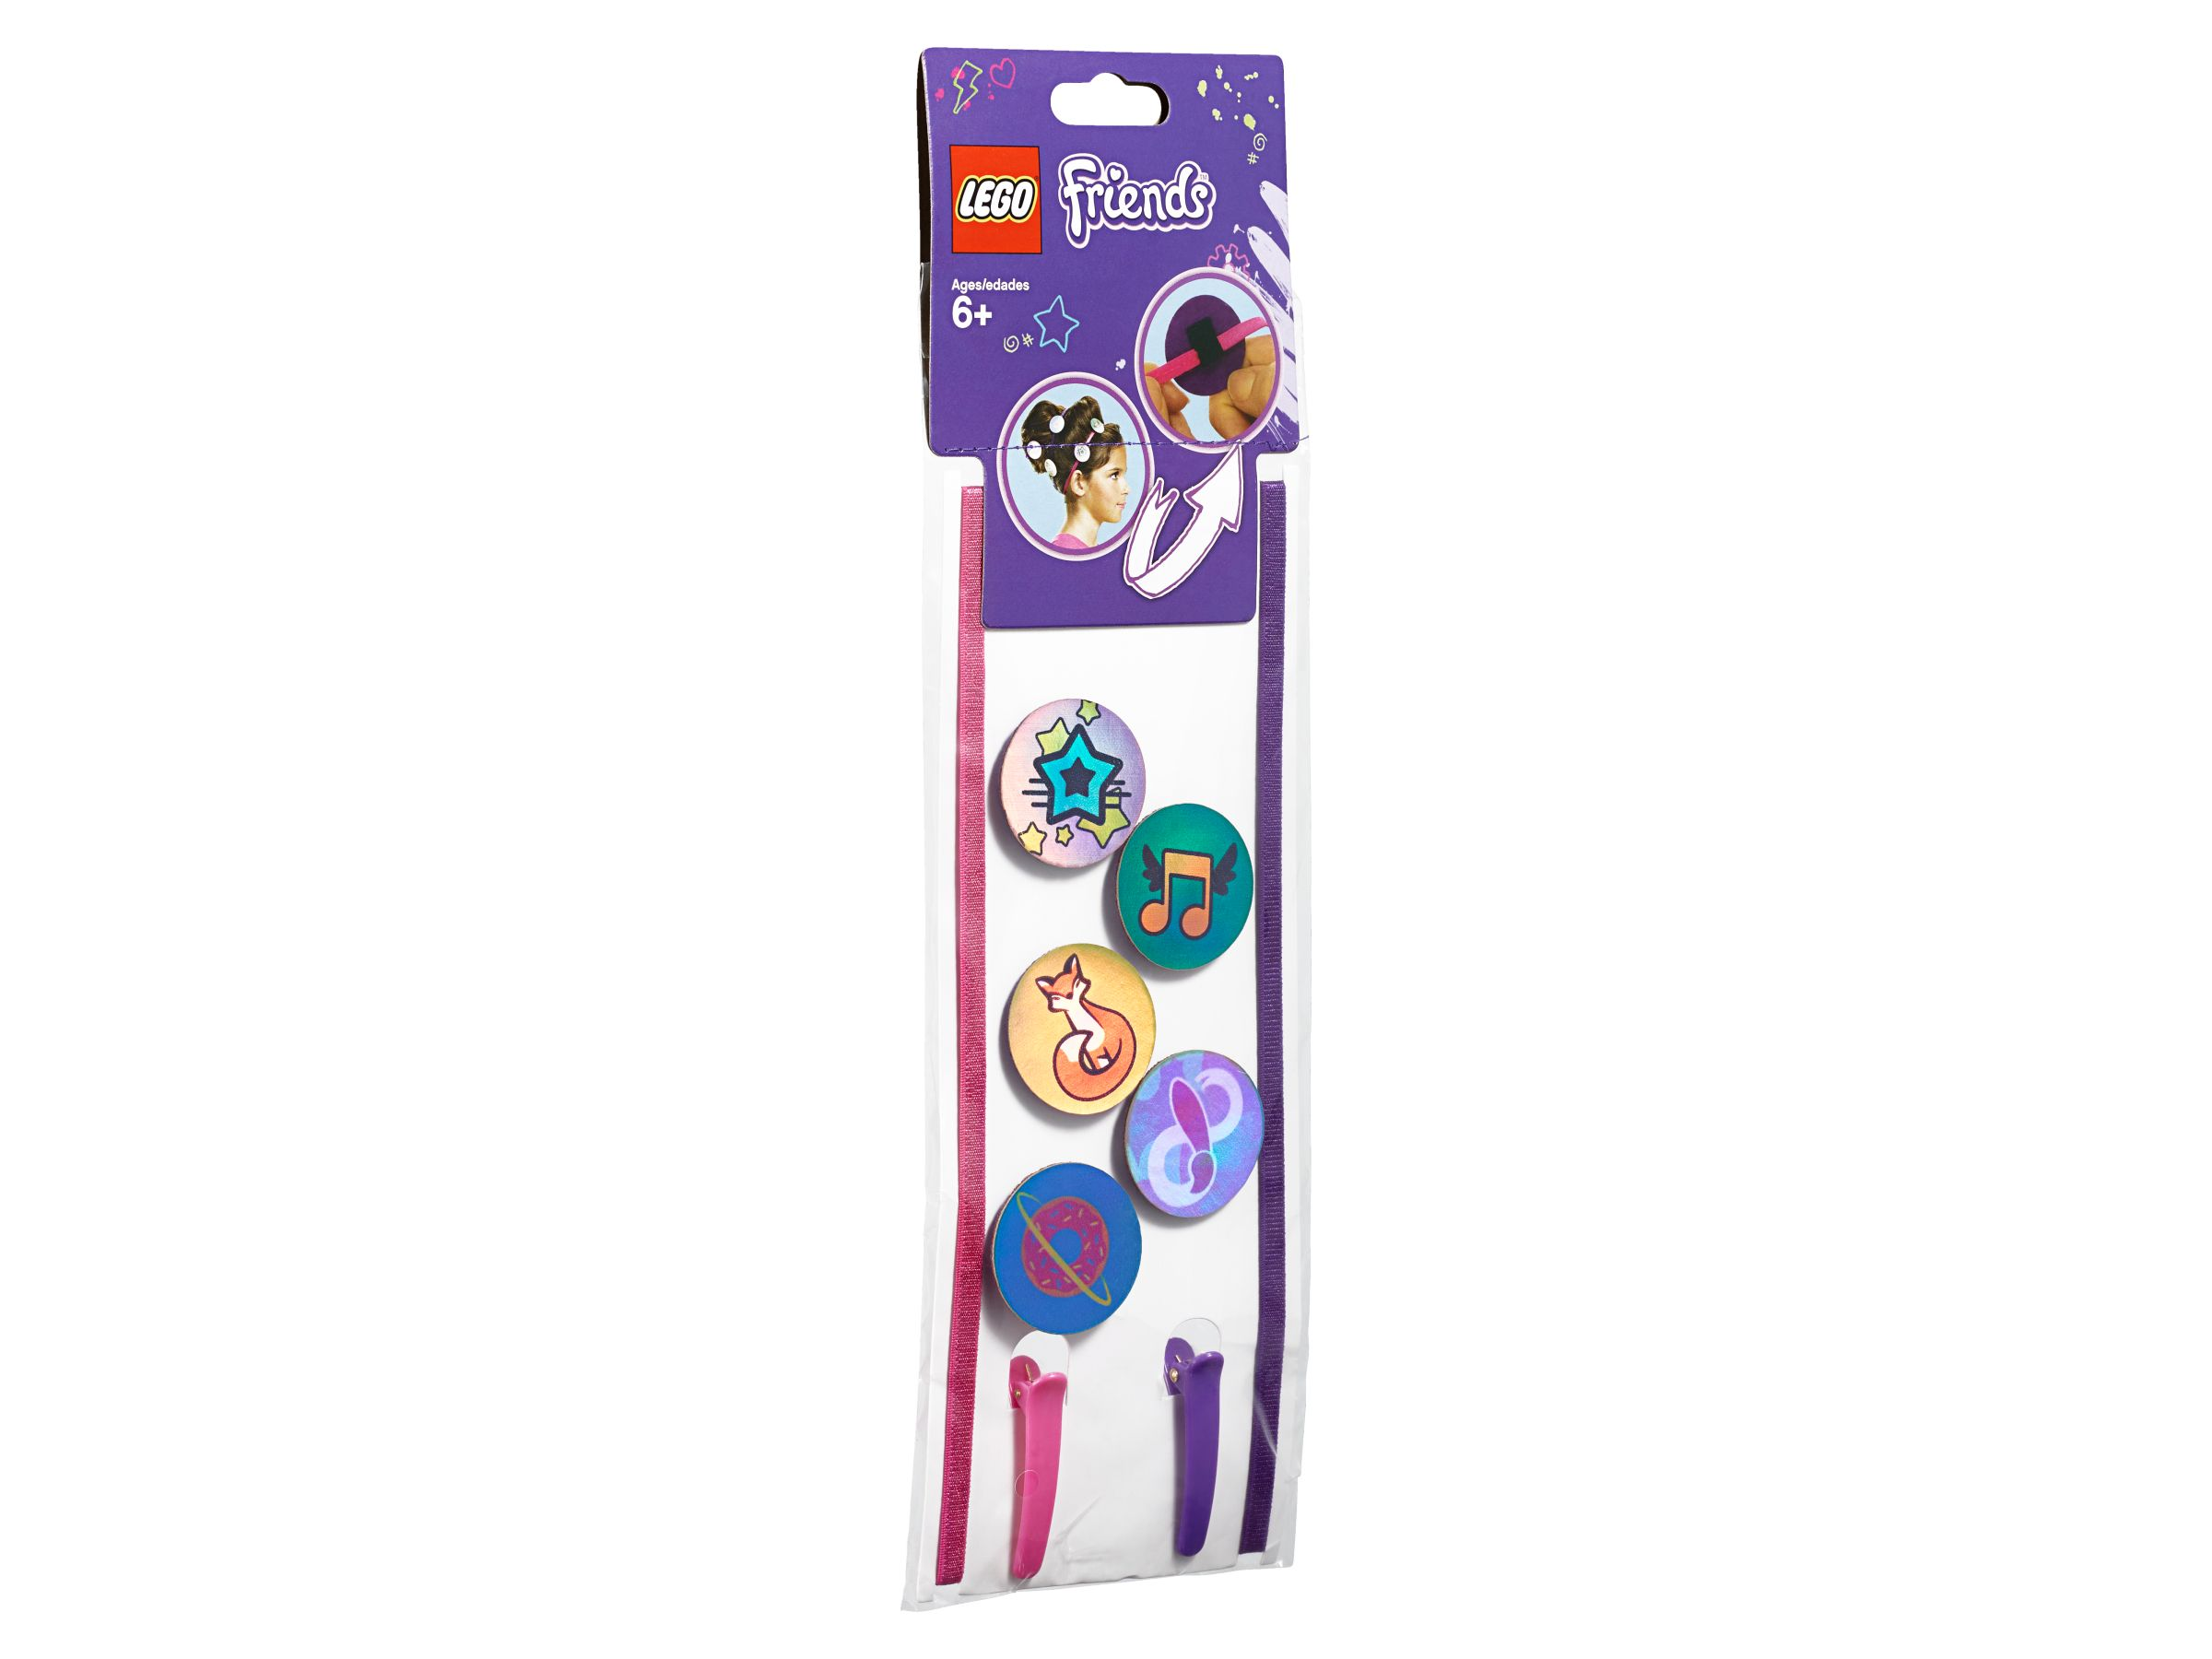 LEGO Gear 853892 Friends Hair Accessory Set LEGO_853892_alt1.jpg